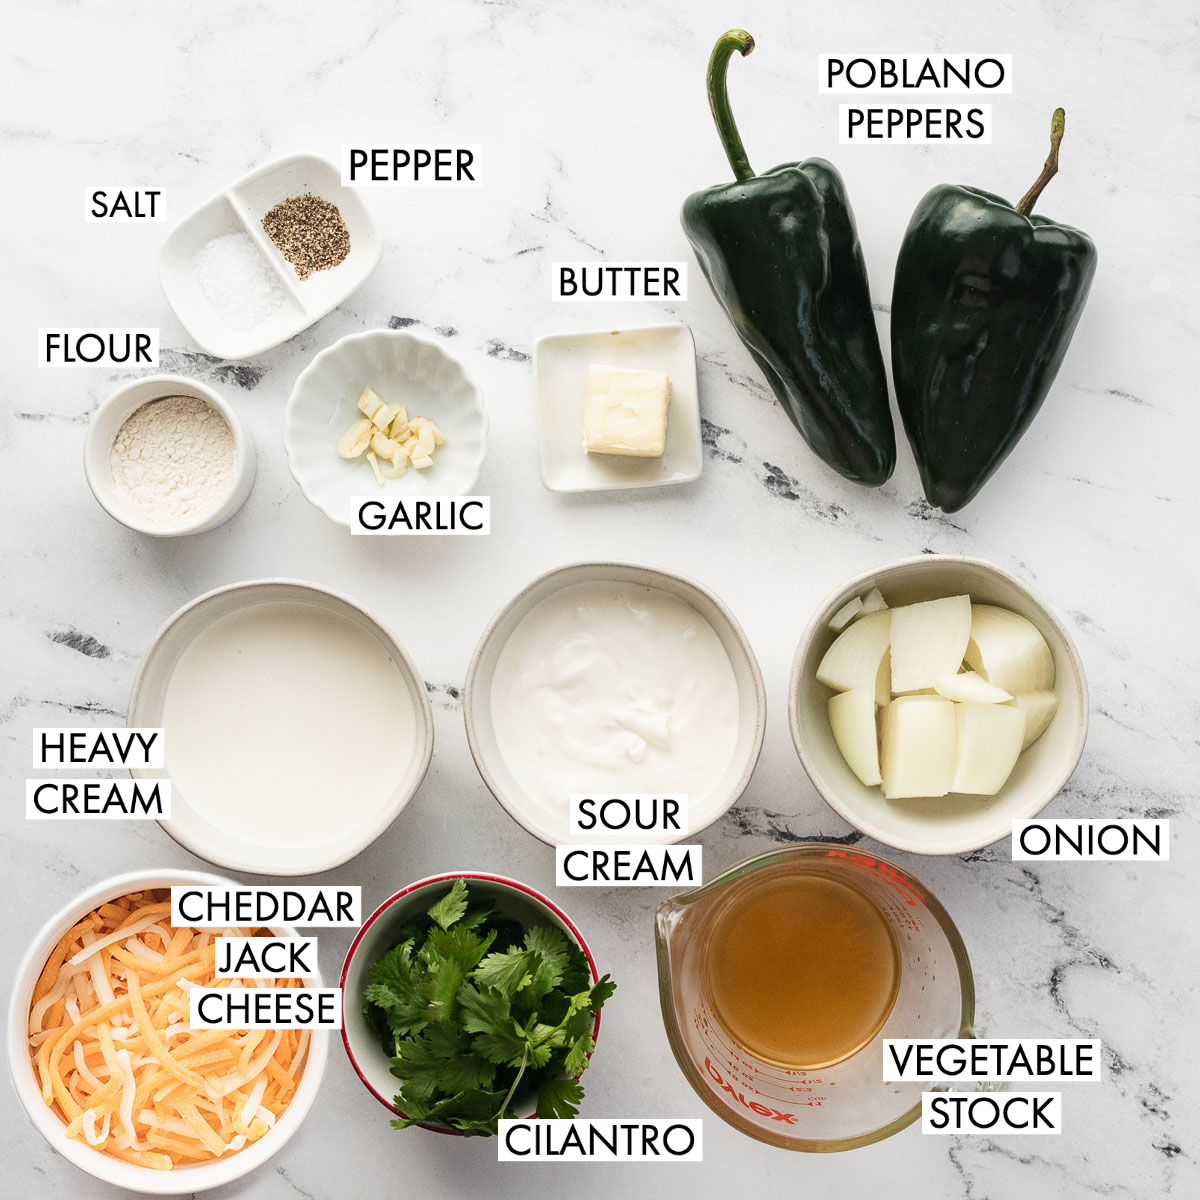 image of ingredients for poblano cream sauce